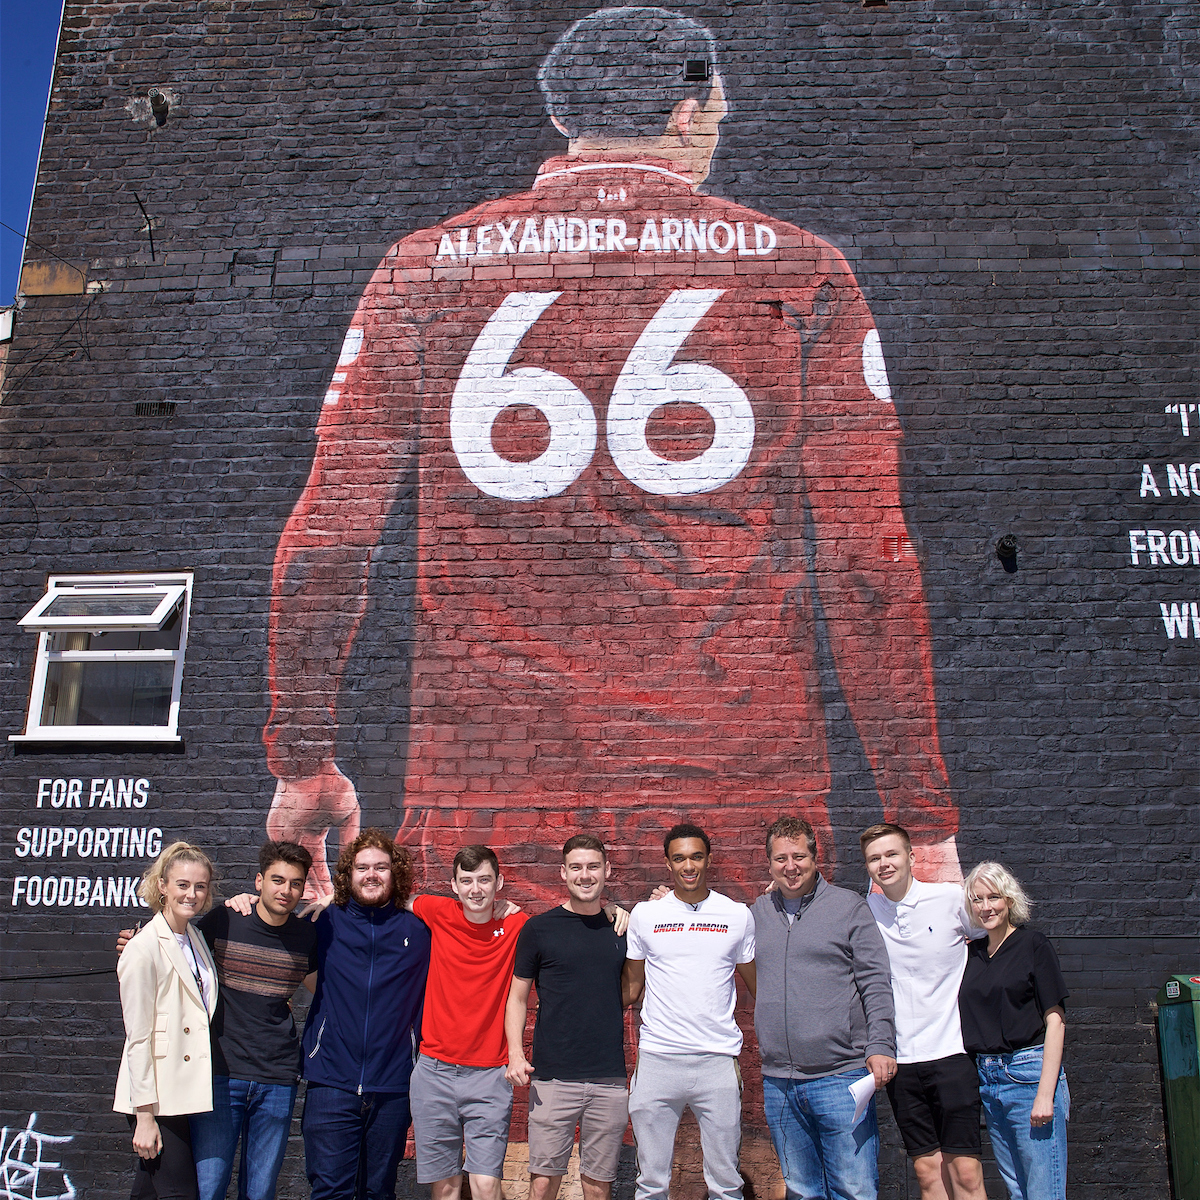 LIVERPOOL, ENGLAND - Thursday, August 8, 2019: The Anfield Wrap with Trent Alexander-Arnold at the official opening of a mural of Liverpool's Trent Alexander-Arnold on the side of a building in Sybil Road, Anfield. The mural was commissioned by The Anfield Wrap and painted by local artist Akse P19. (Pic by David Rawcliffe/Propaganda)